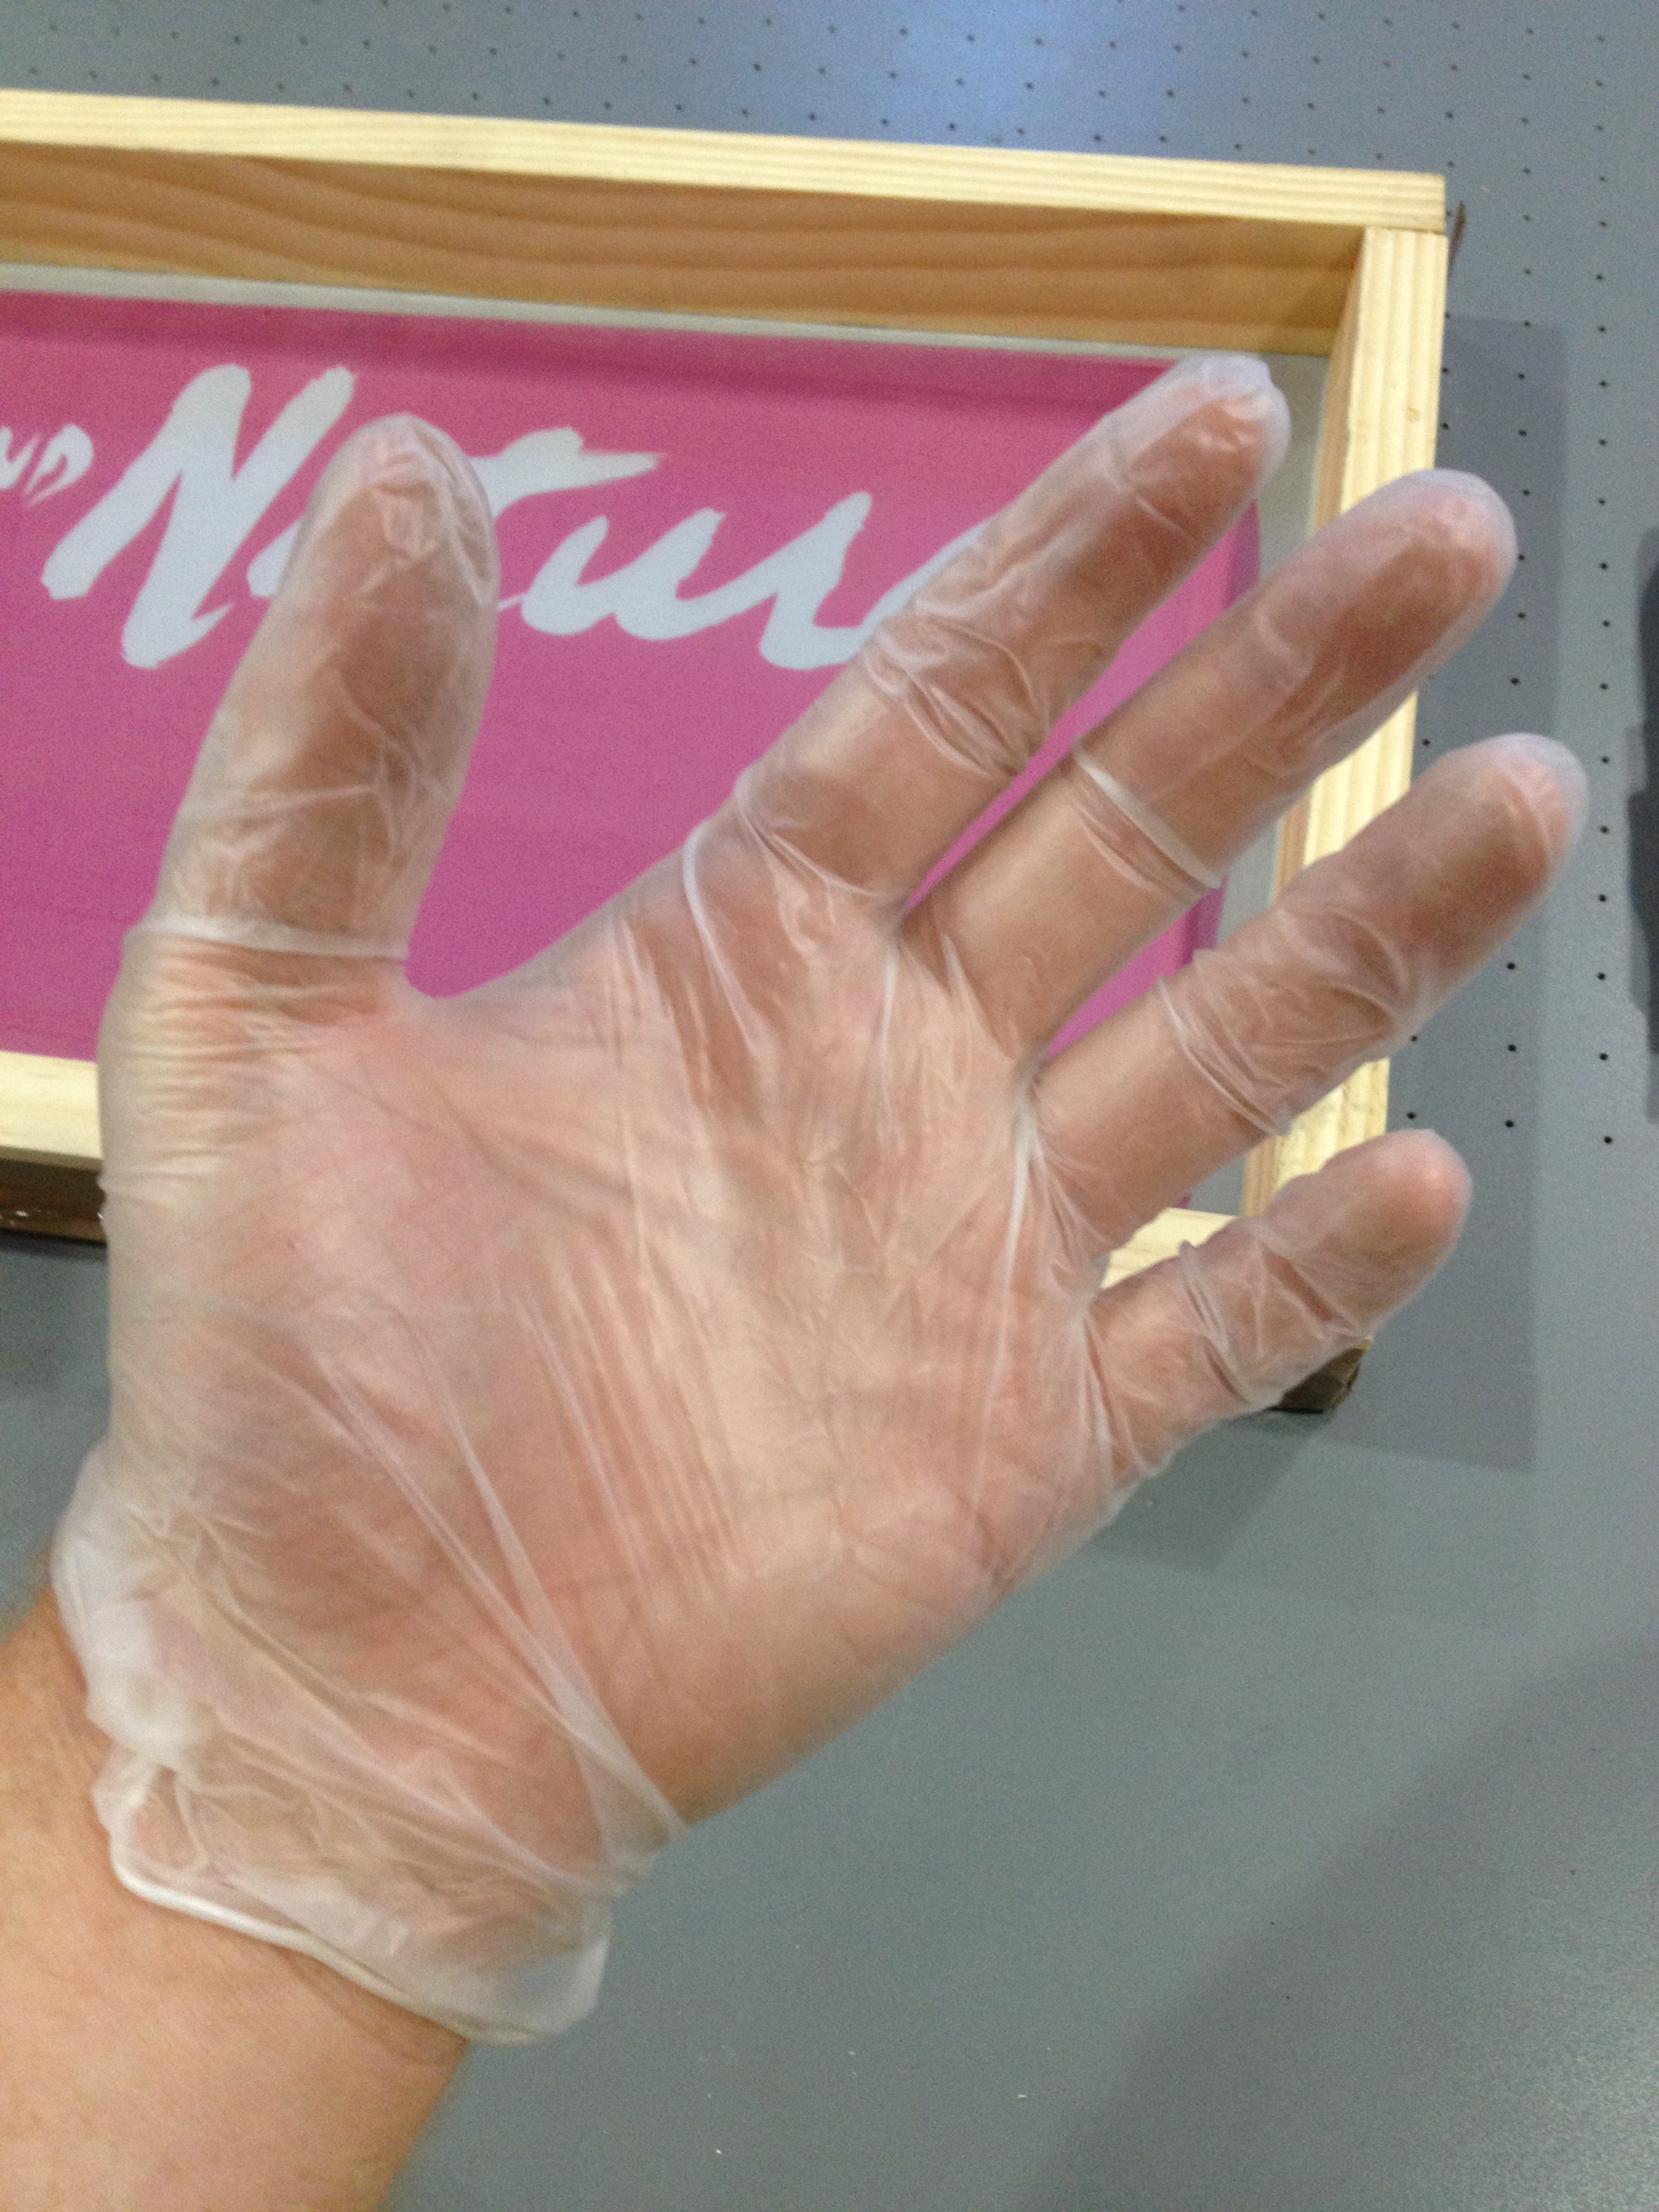 wear gloves! for this print we used Nazdar 59000 a solvent based ink permanent and weatherproof on chalkboard